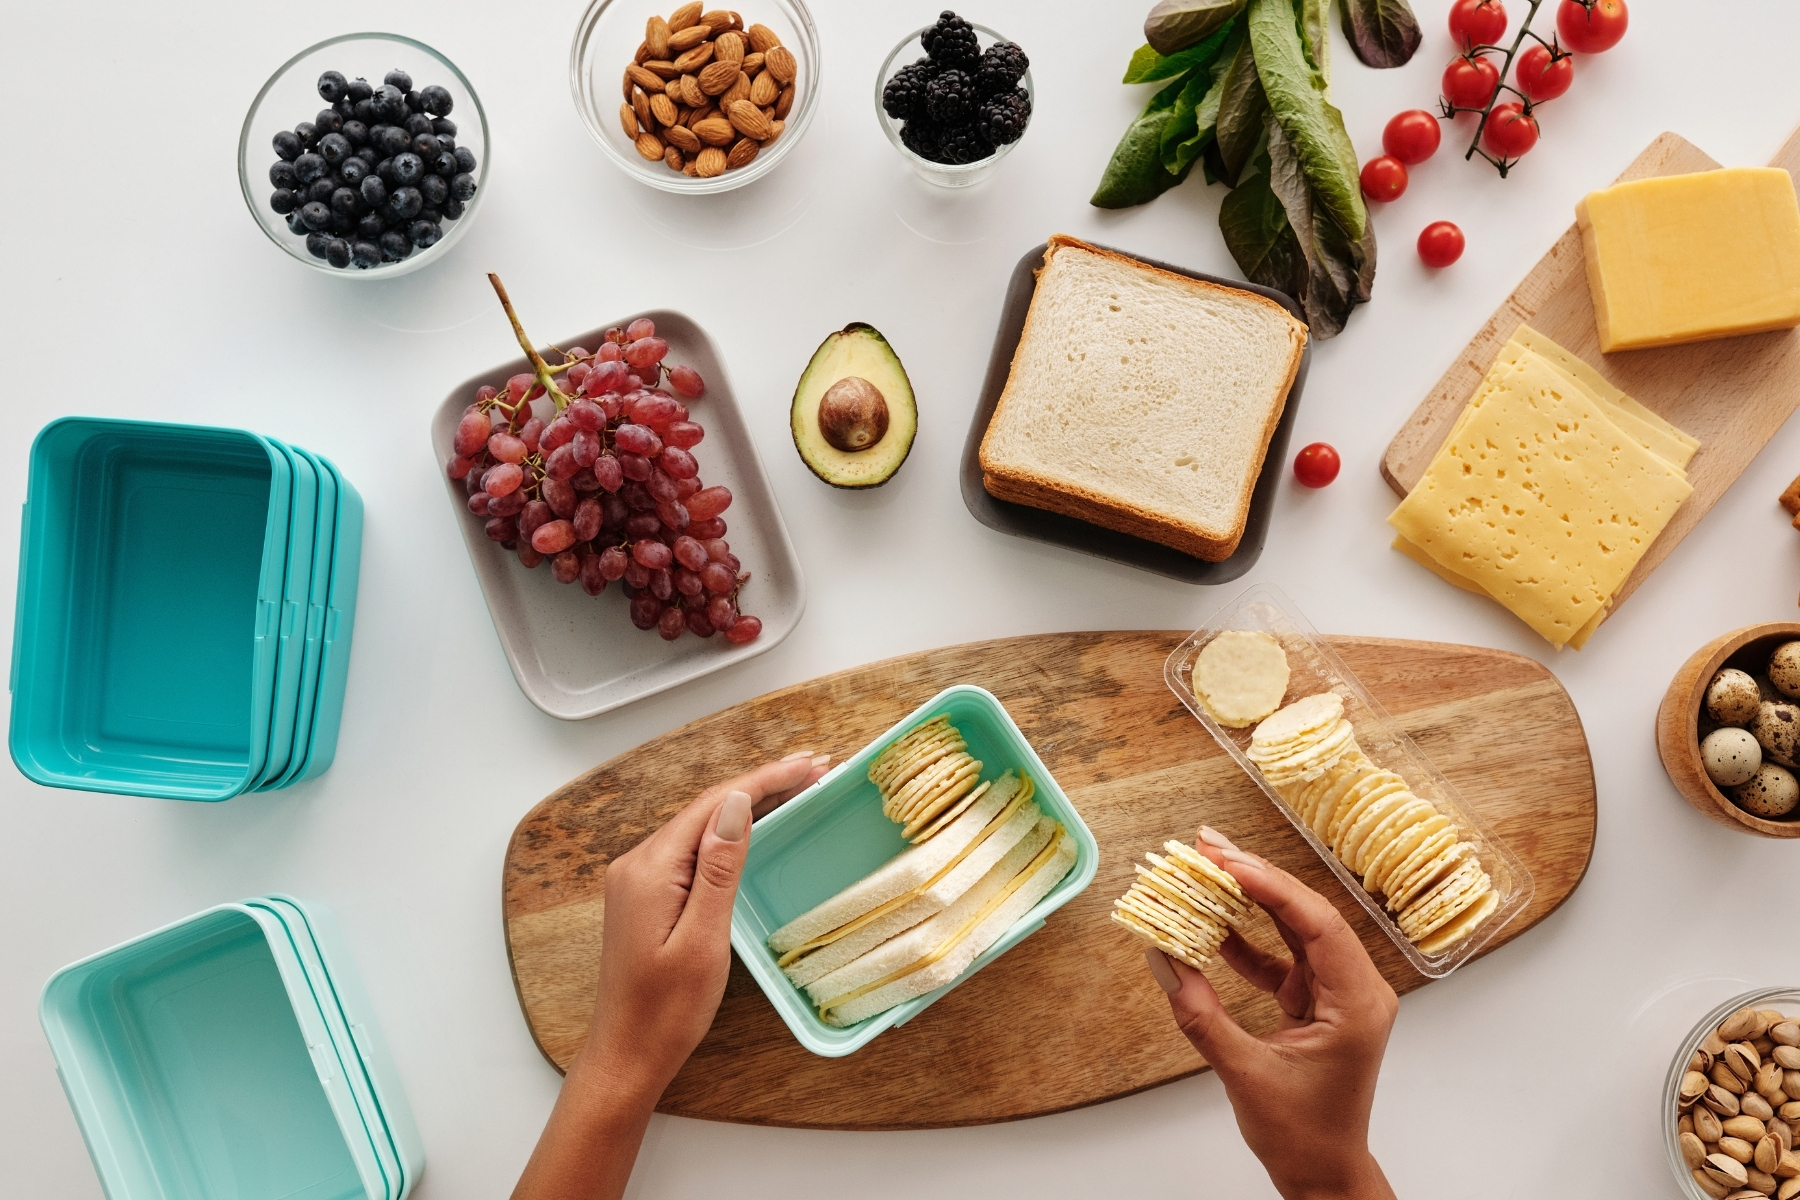 Image of various healthy snacks that could be included in a diet focused on intuitive eating: sandwich, crackers, fruit, cheese, and nuts.